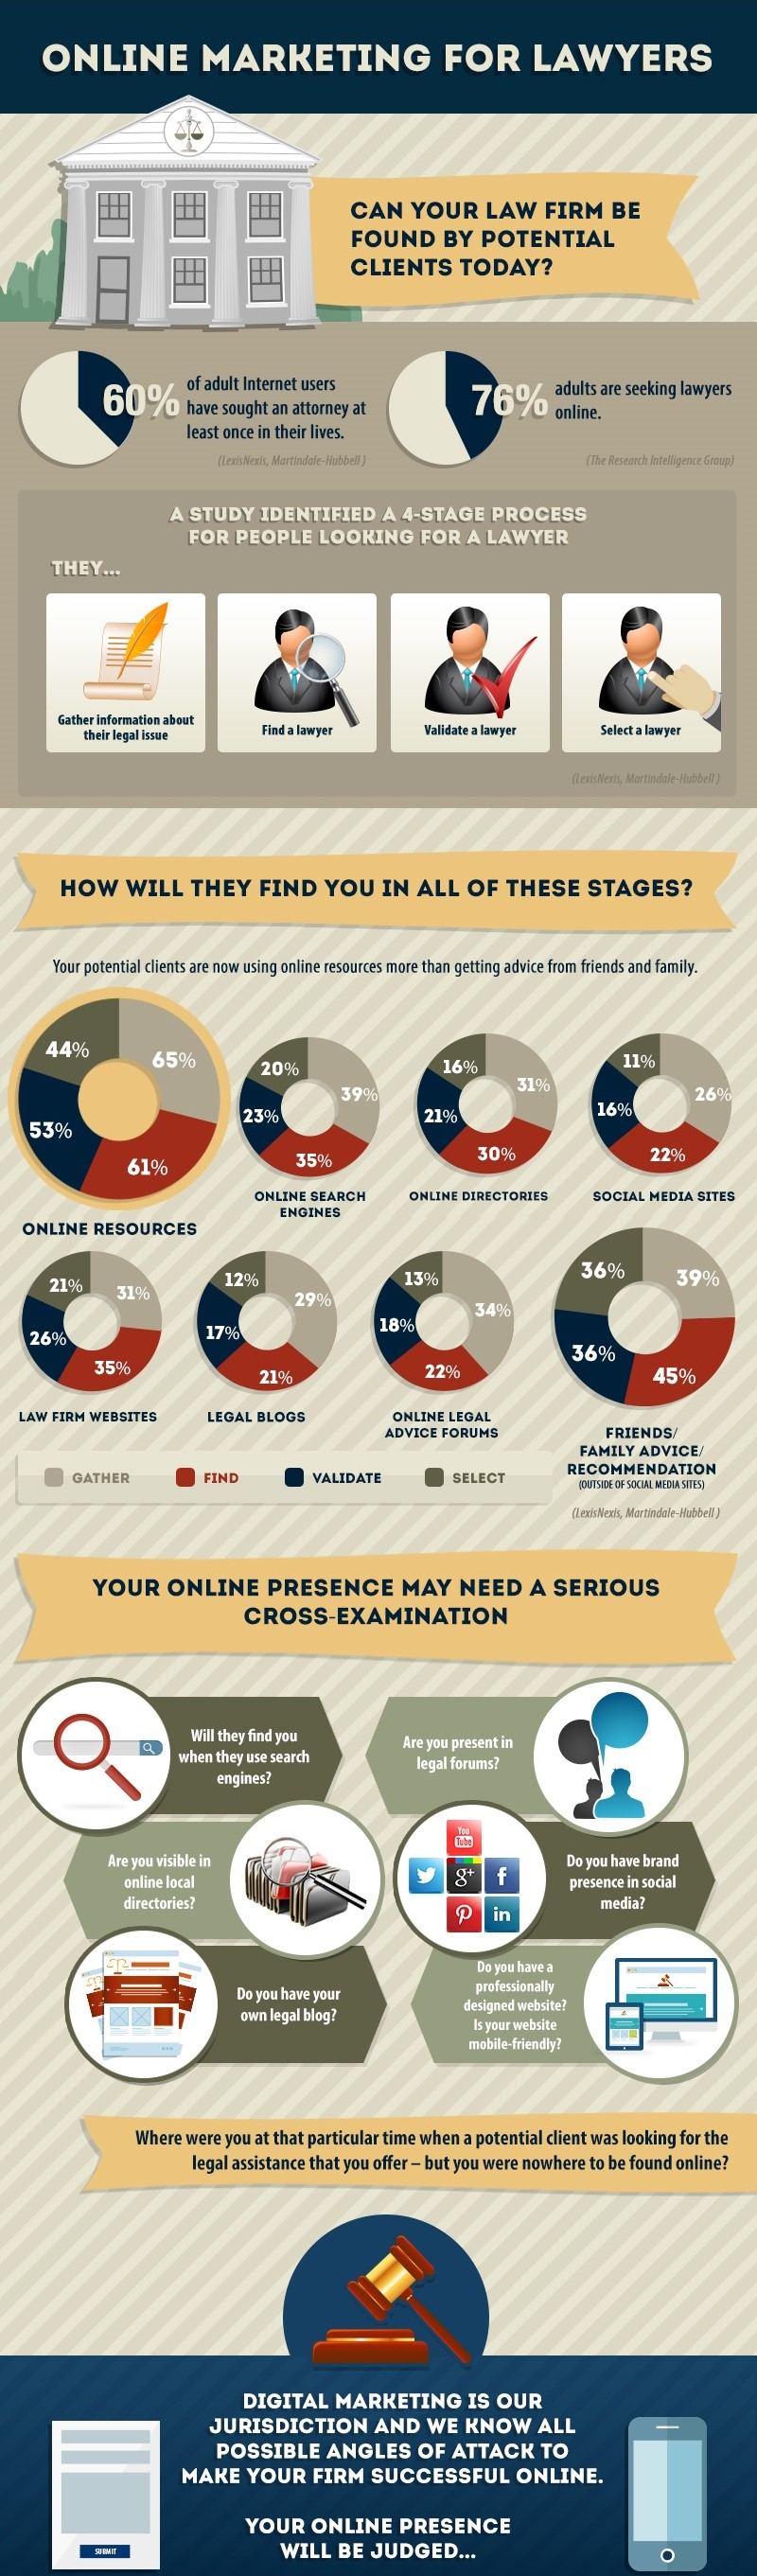 Online-Marketing-for-Lawyers-Infographic